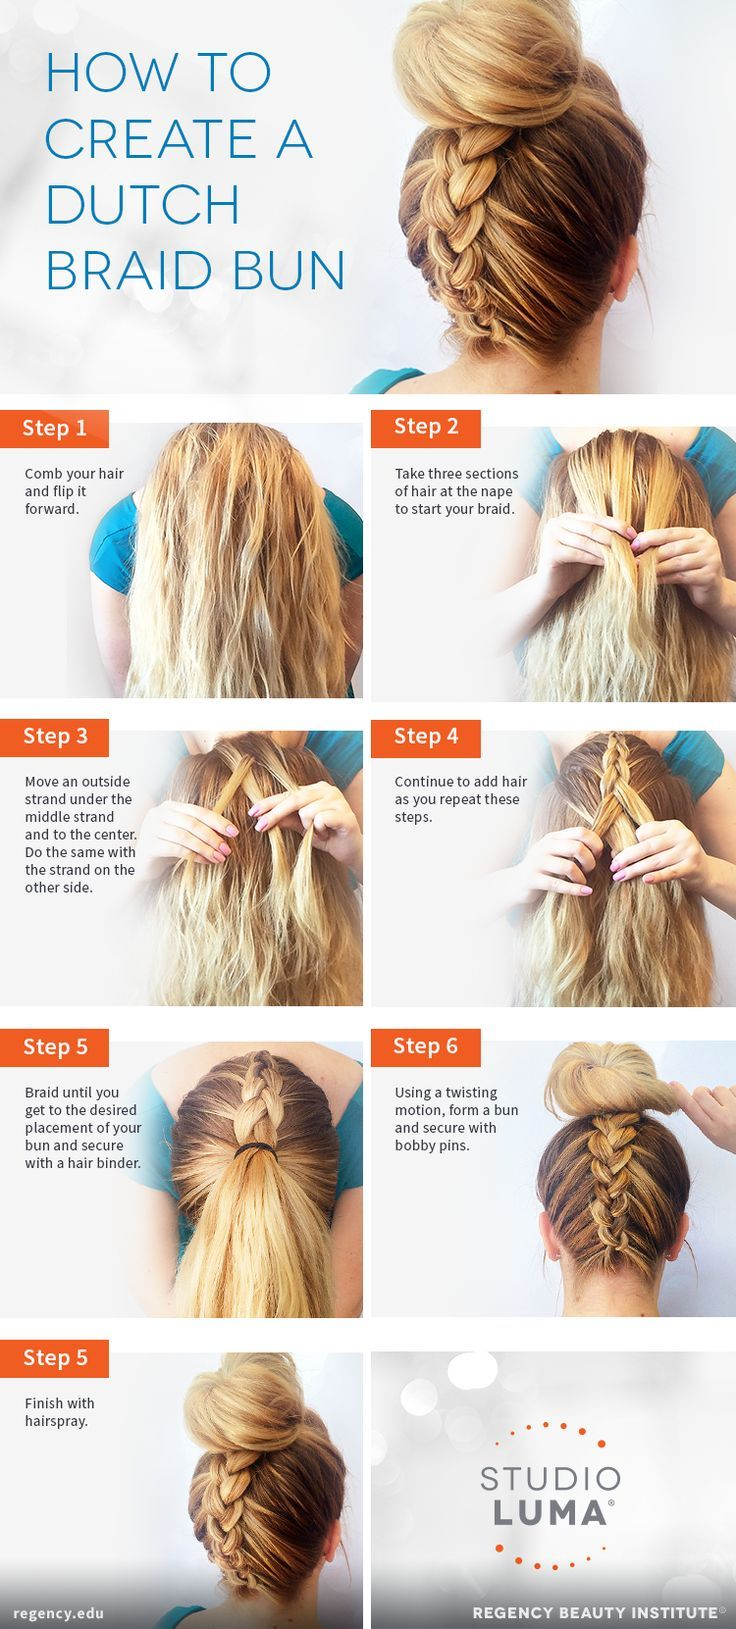 11 easy to do hairstyle ideas for summers | dutch braids, french